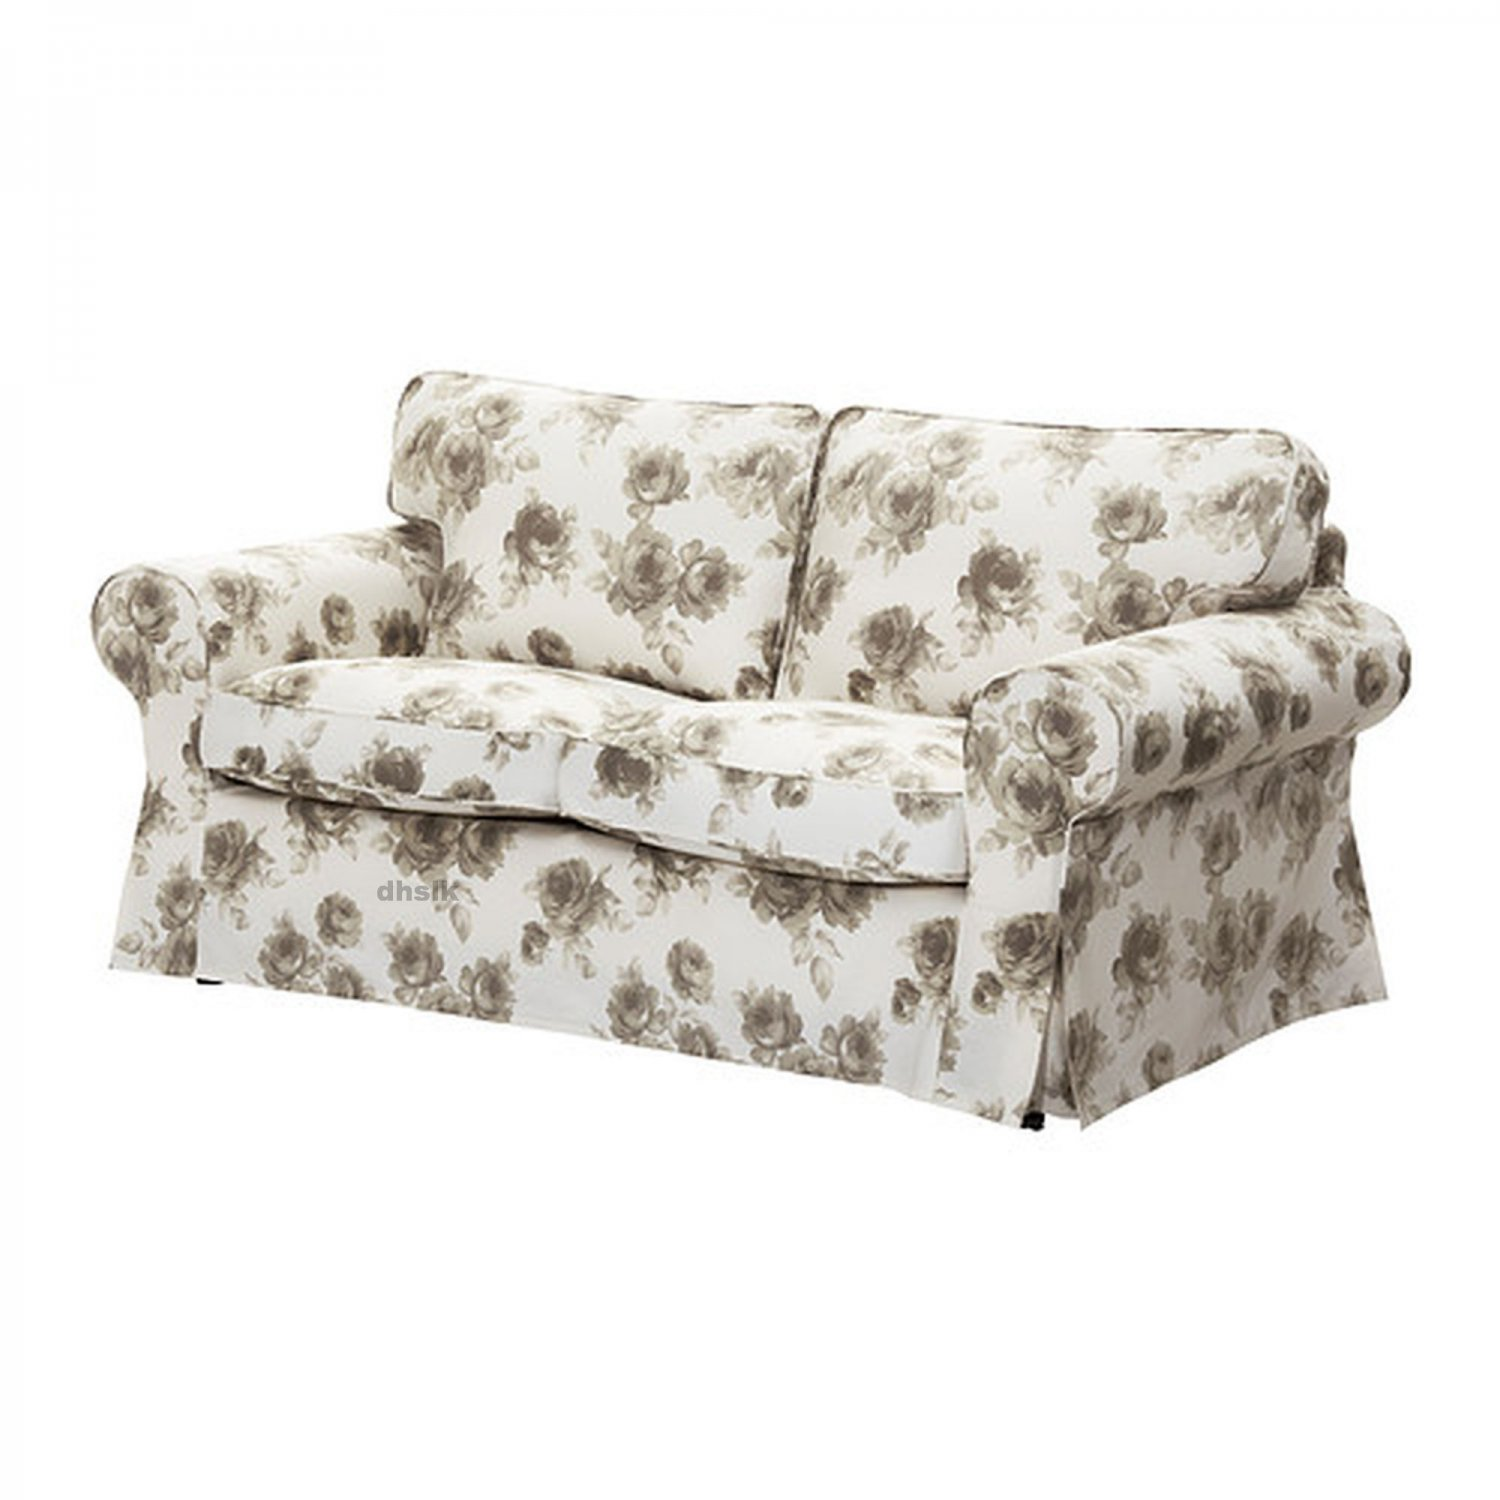 Ikea Ektorp 2 Seat Sofa Slipcover Loveseat Cover Norlida Beige White Floral Last Ones